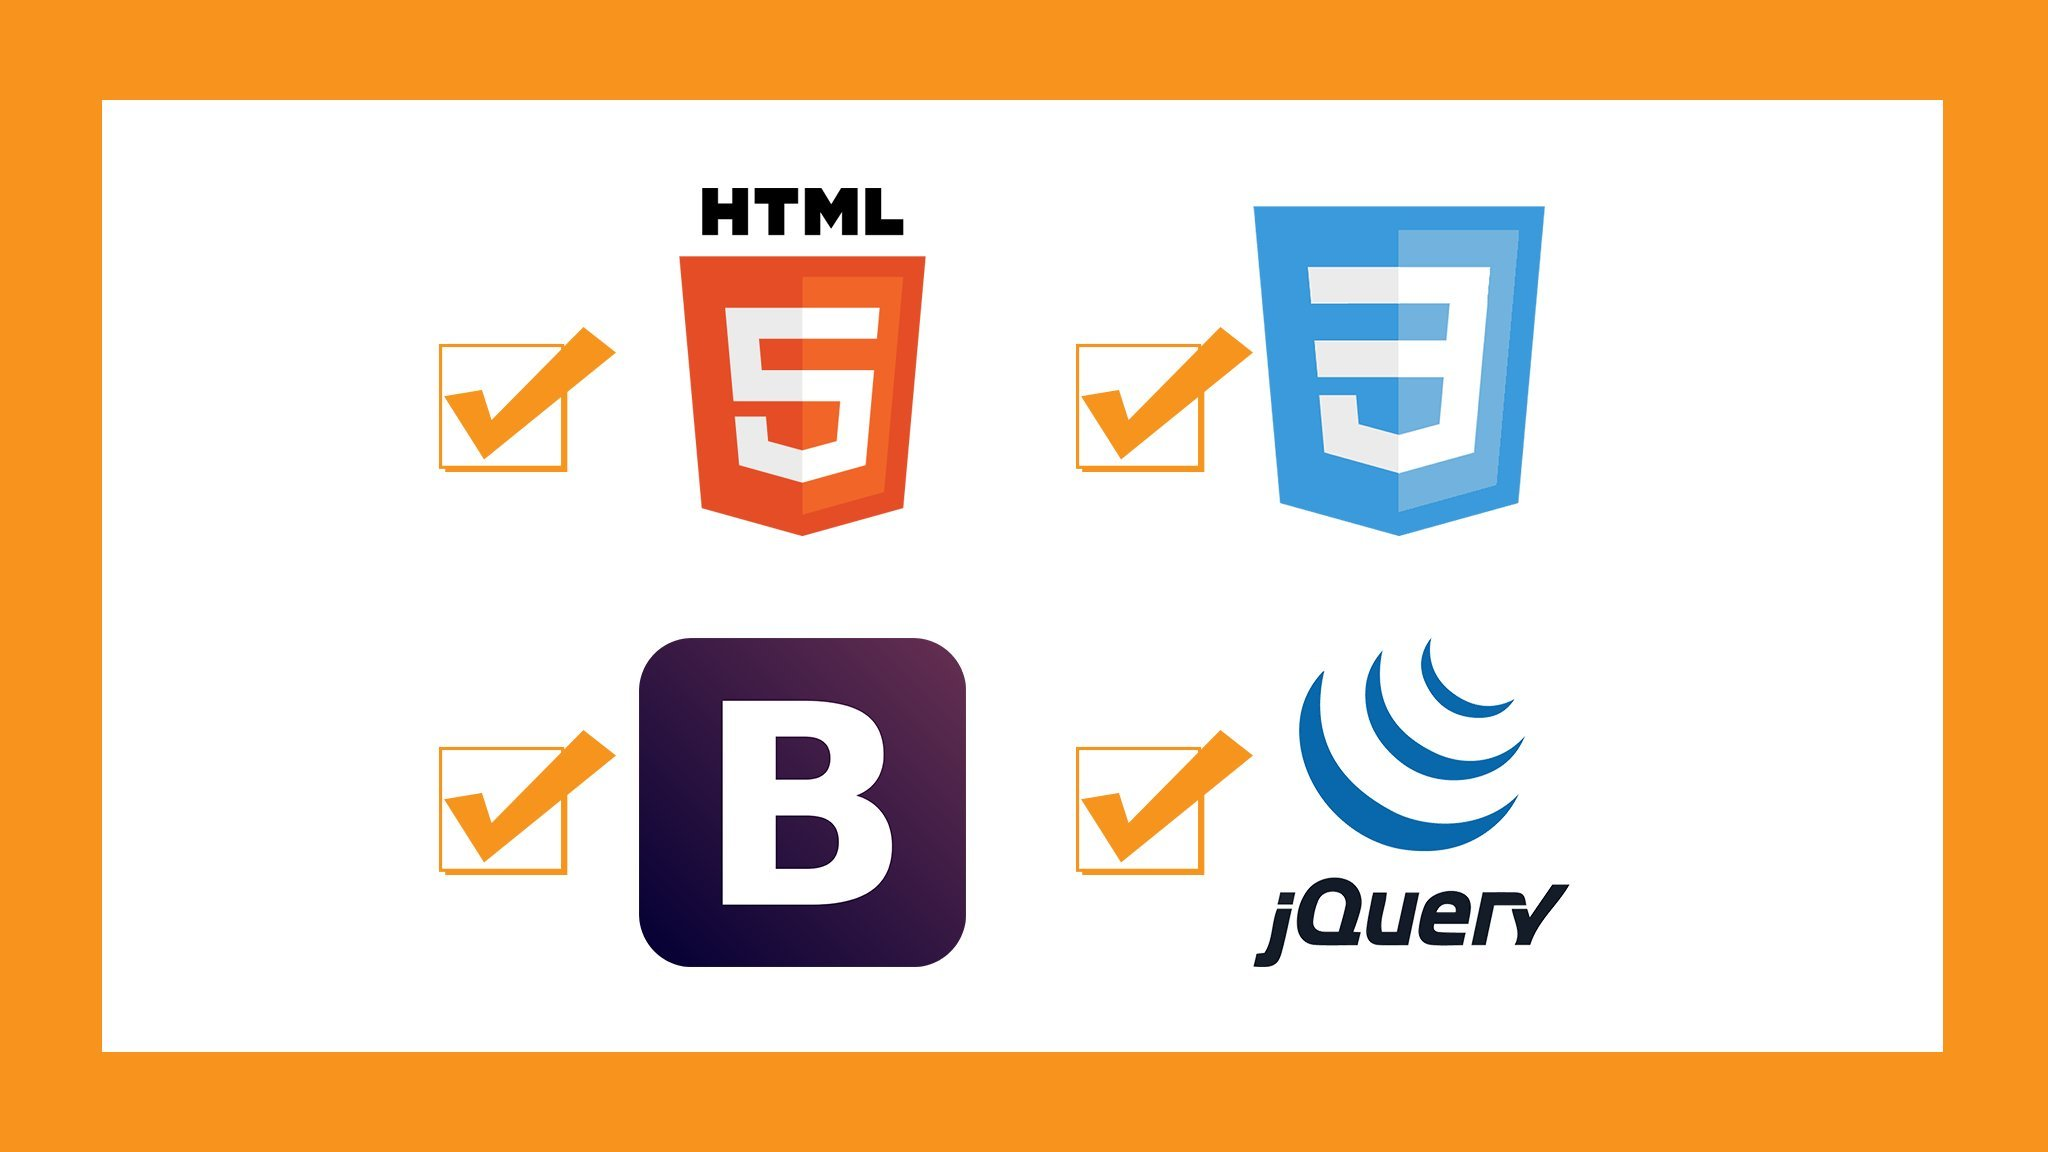 Web Development with HTML CSS BOOTSTRAP JQUERY